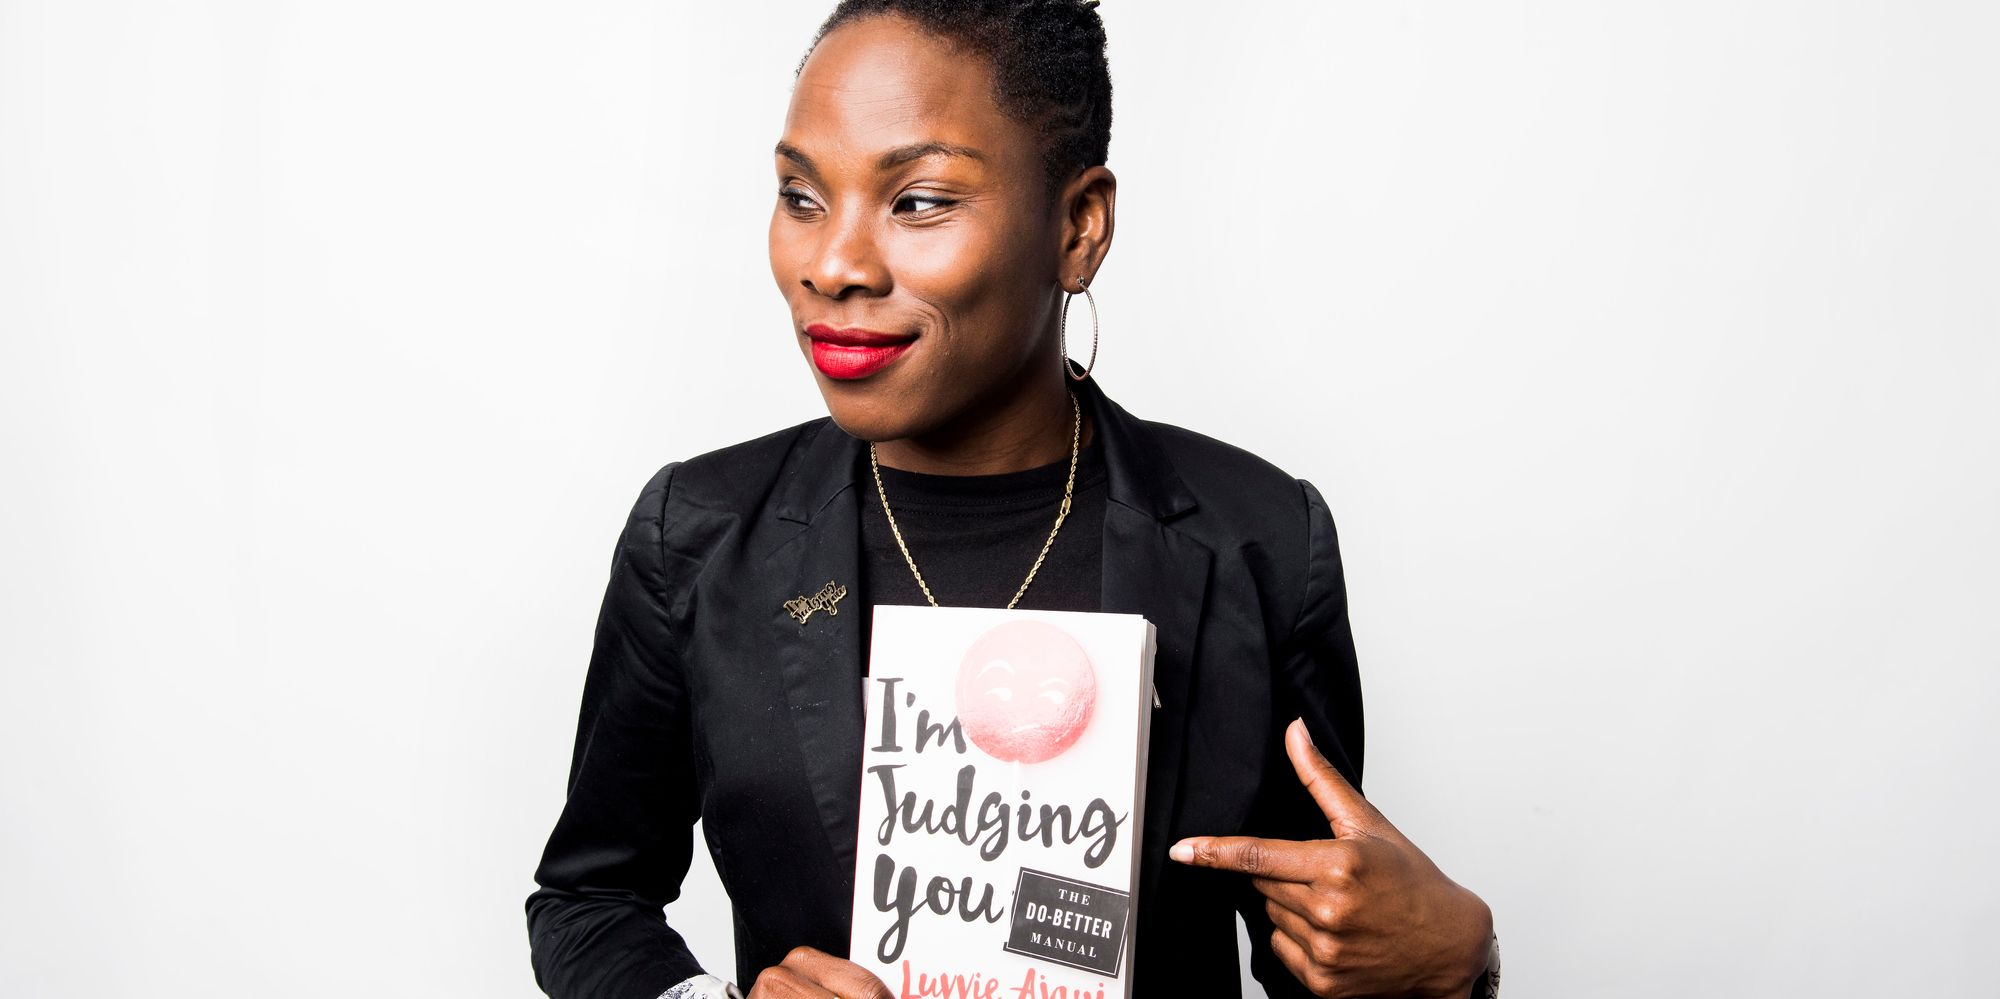 Image result for i'm judging you by luvvie ajayi.